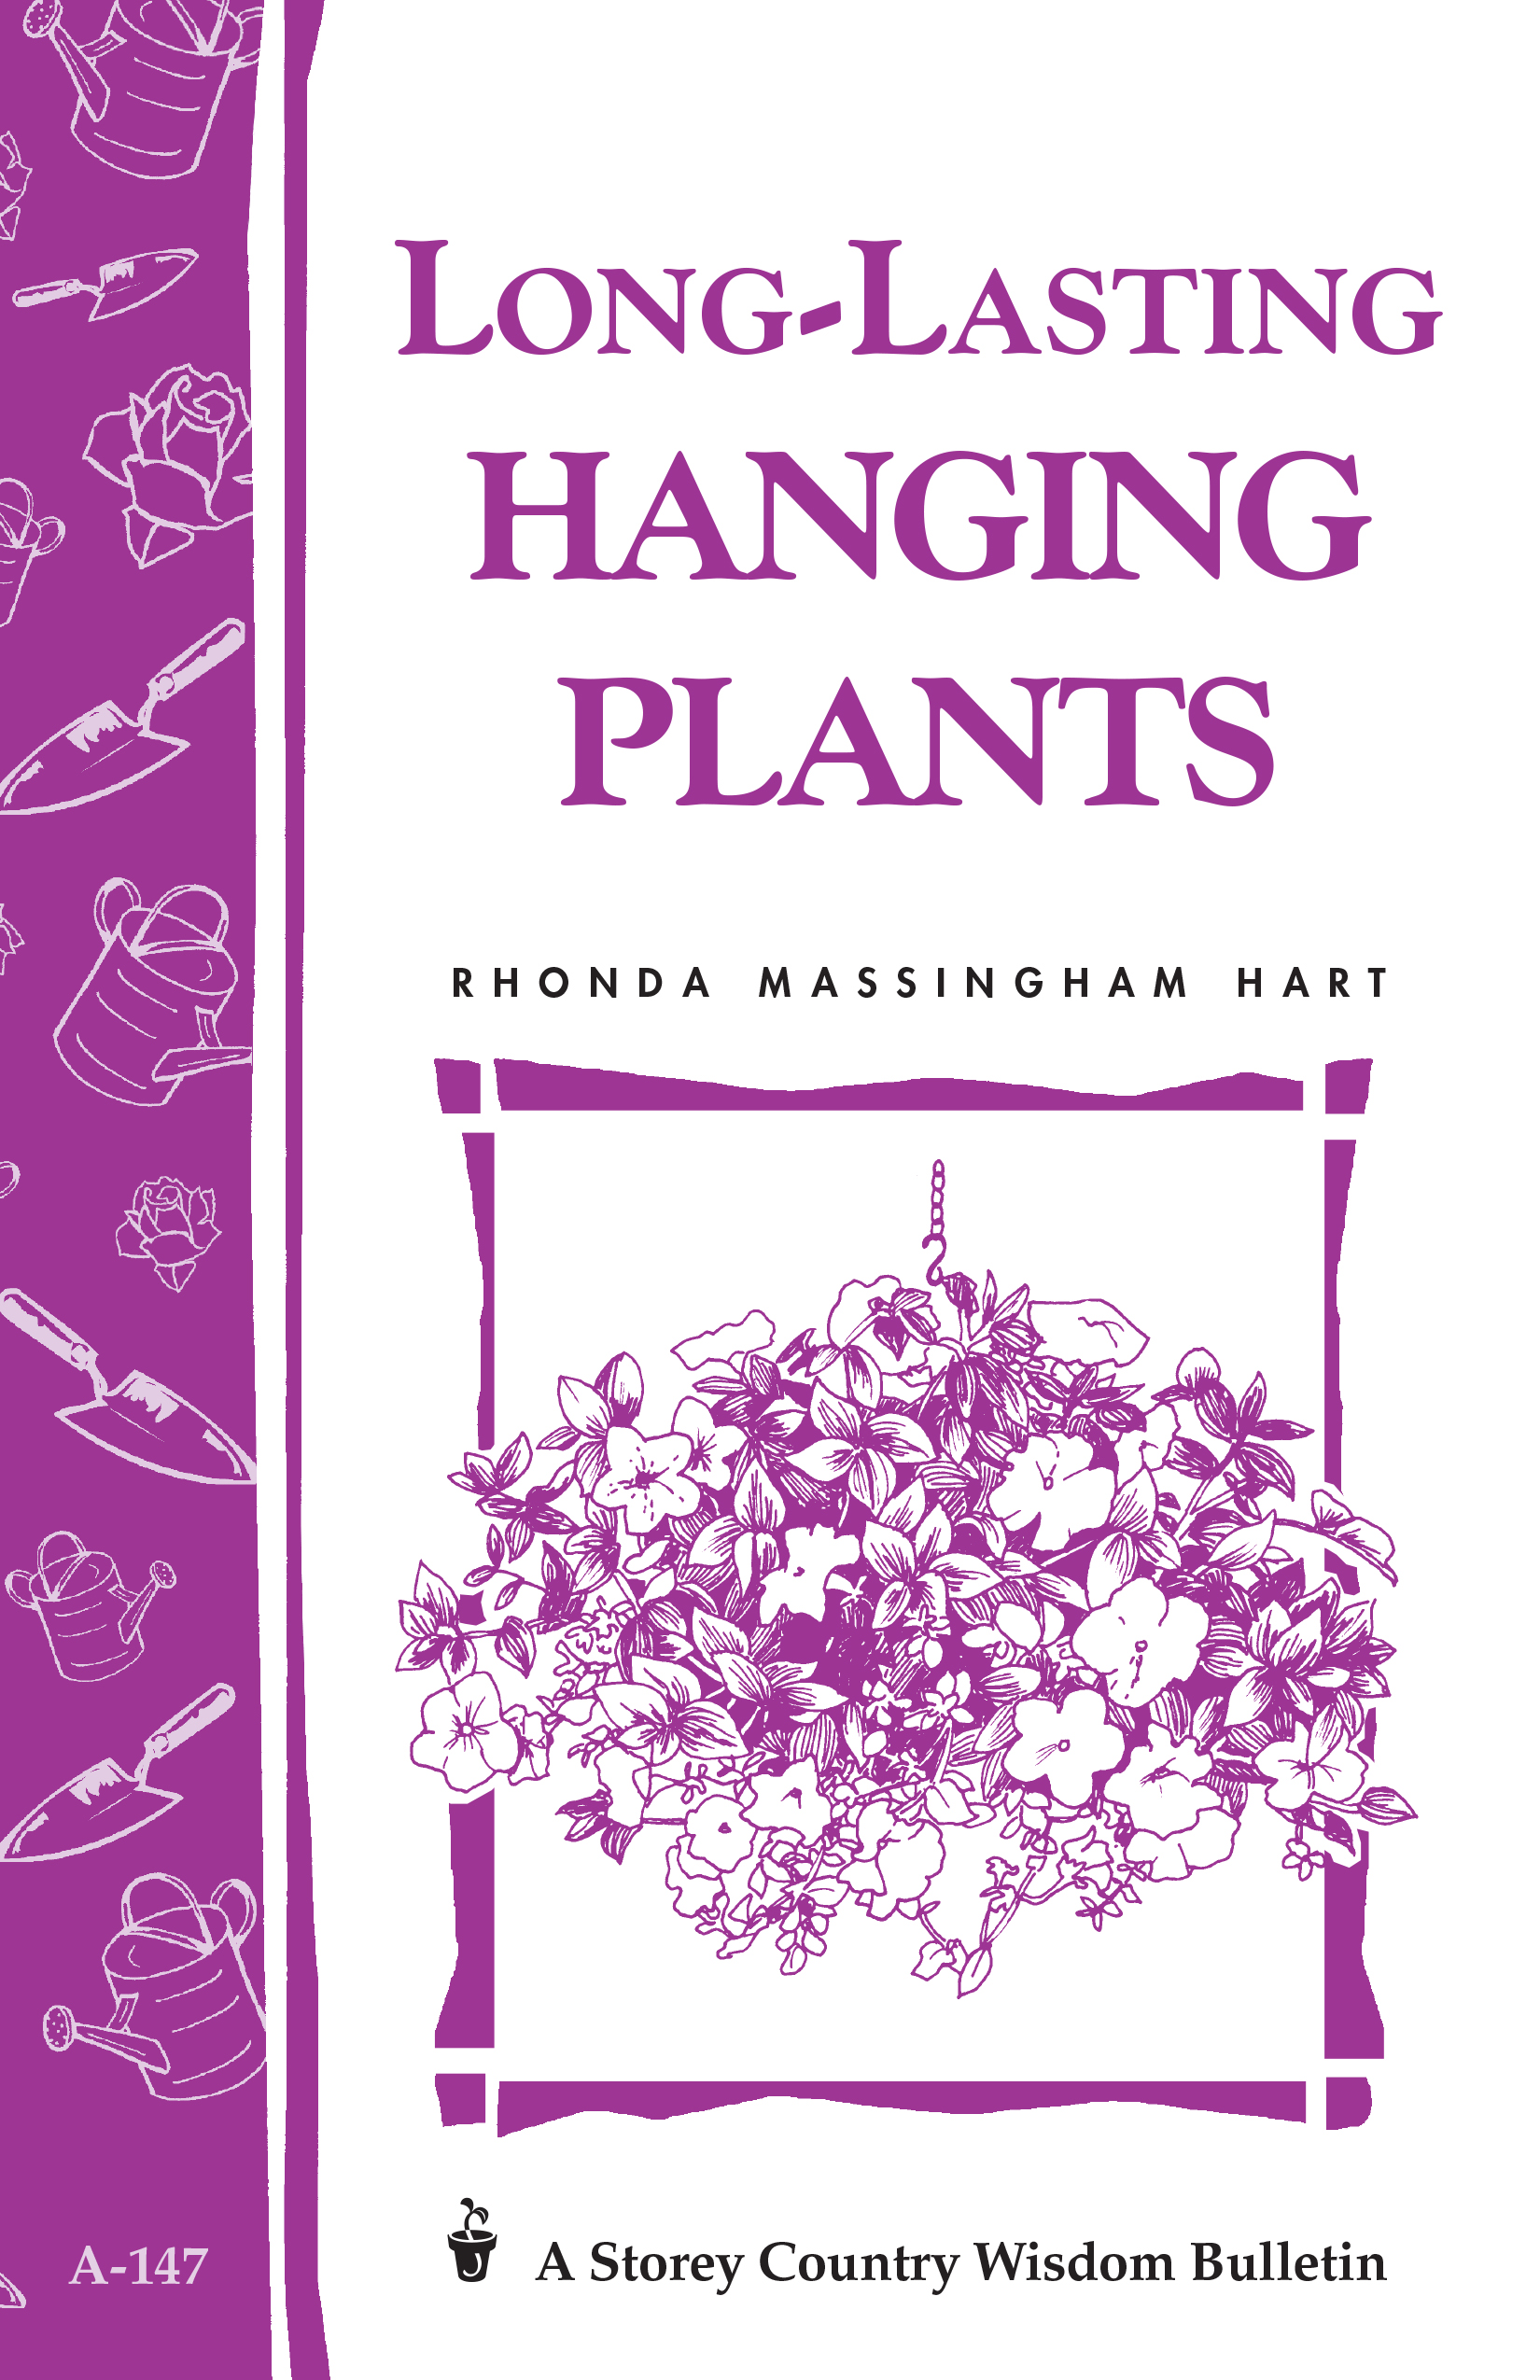 Long-Lasting Hanging Plants Storey's Country Wisdom Bulletin A-147 - Rhonda Massingham Hart